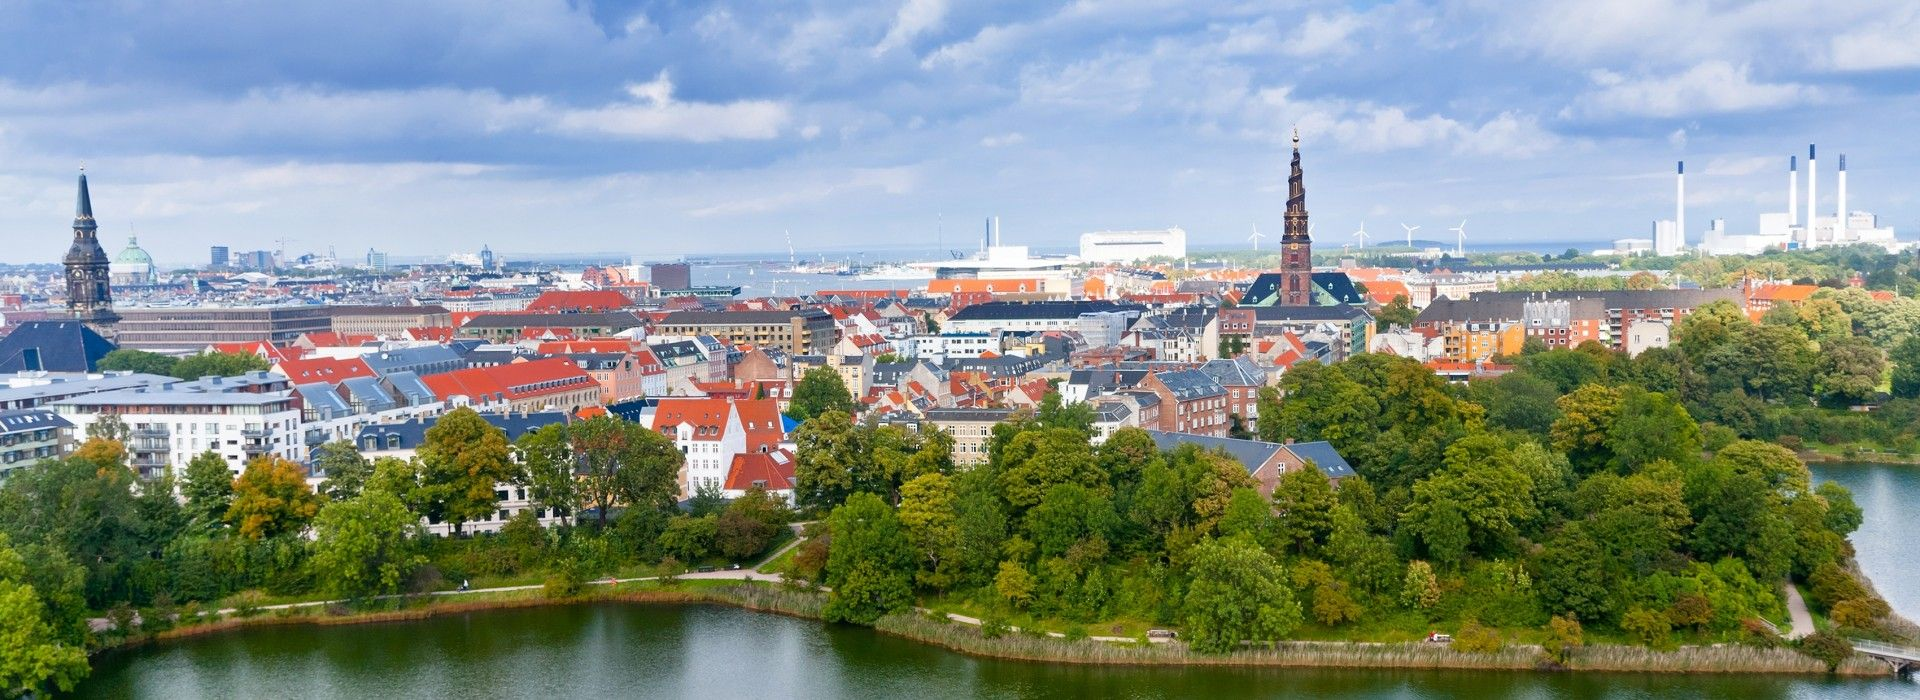 Cultural, religious and historic sites Tours in Europe